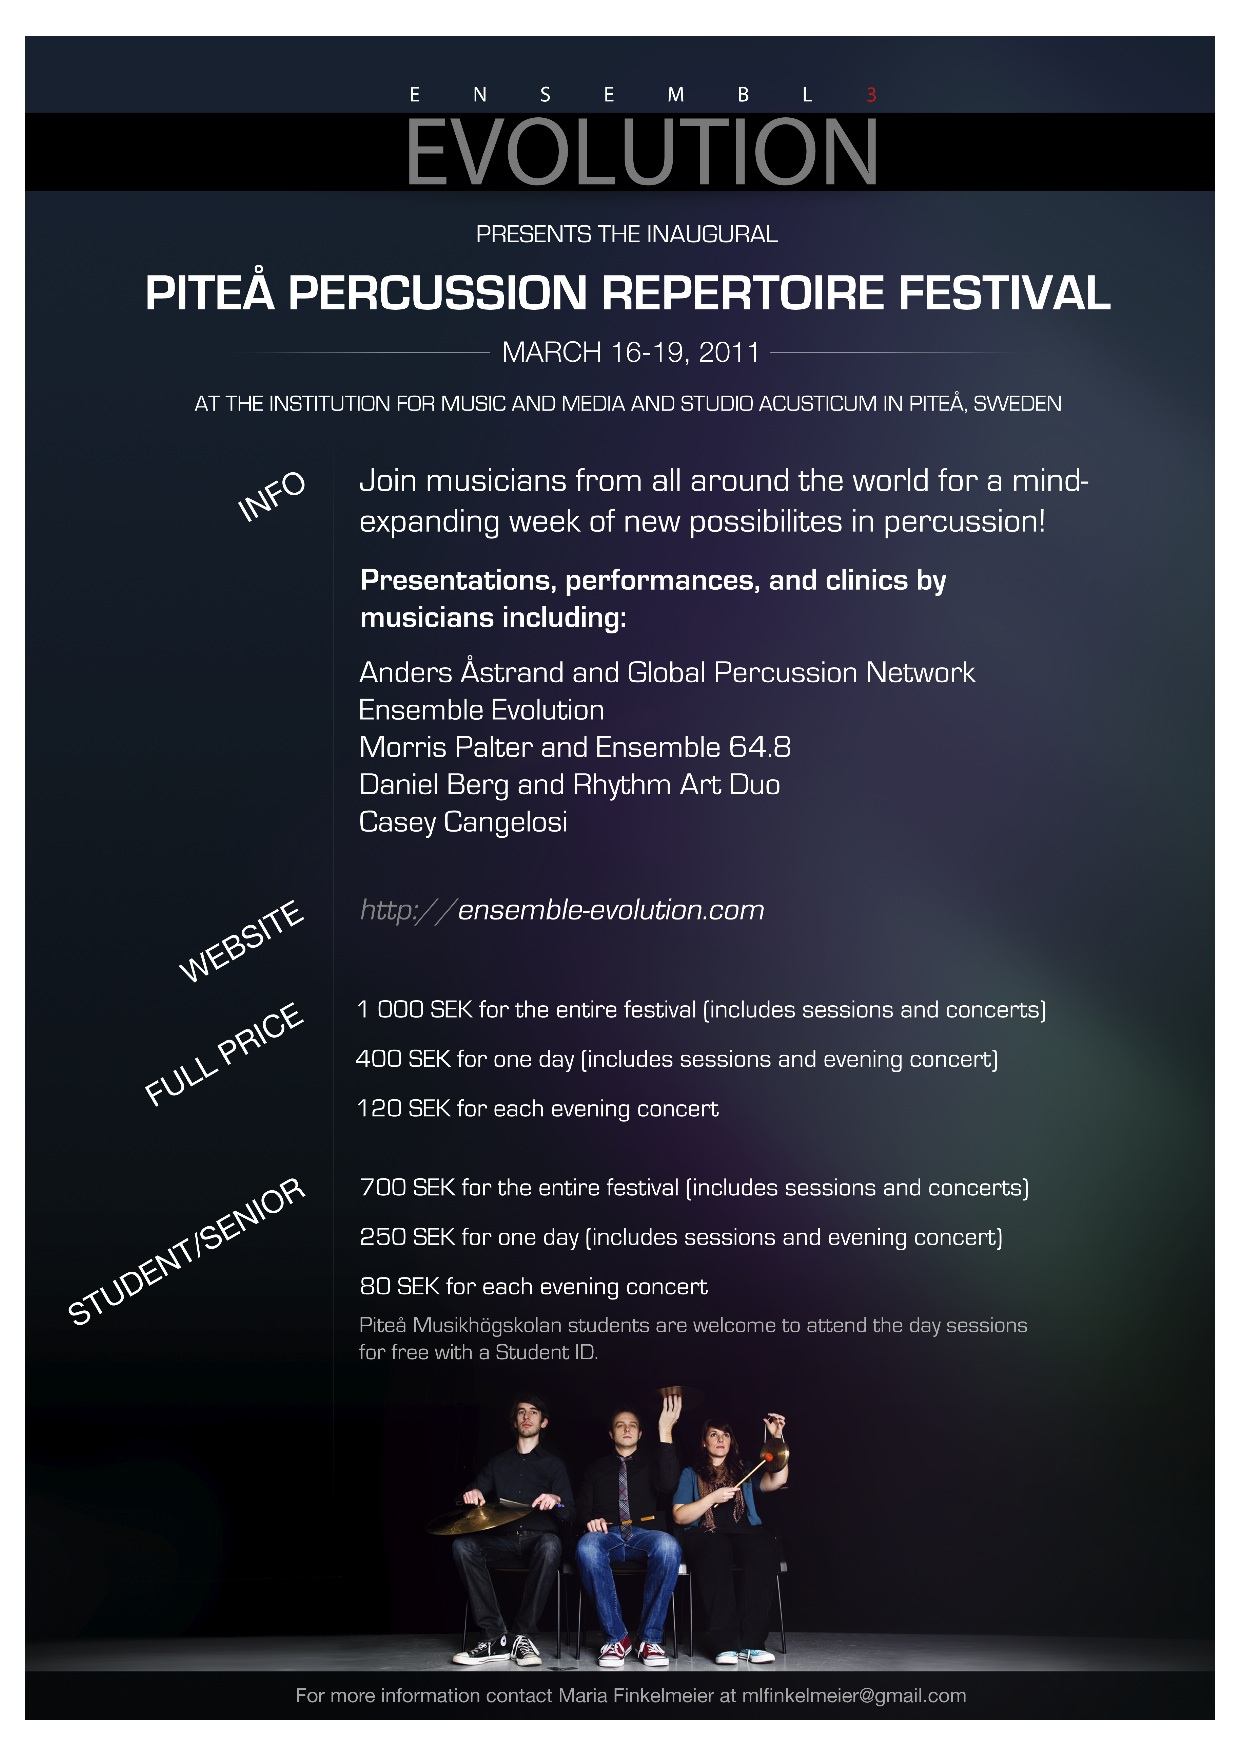 Poster from the Piteå Percussion Repertoire Festival